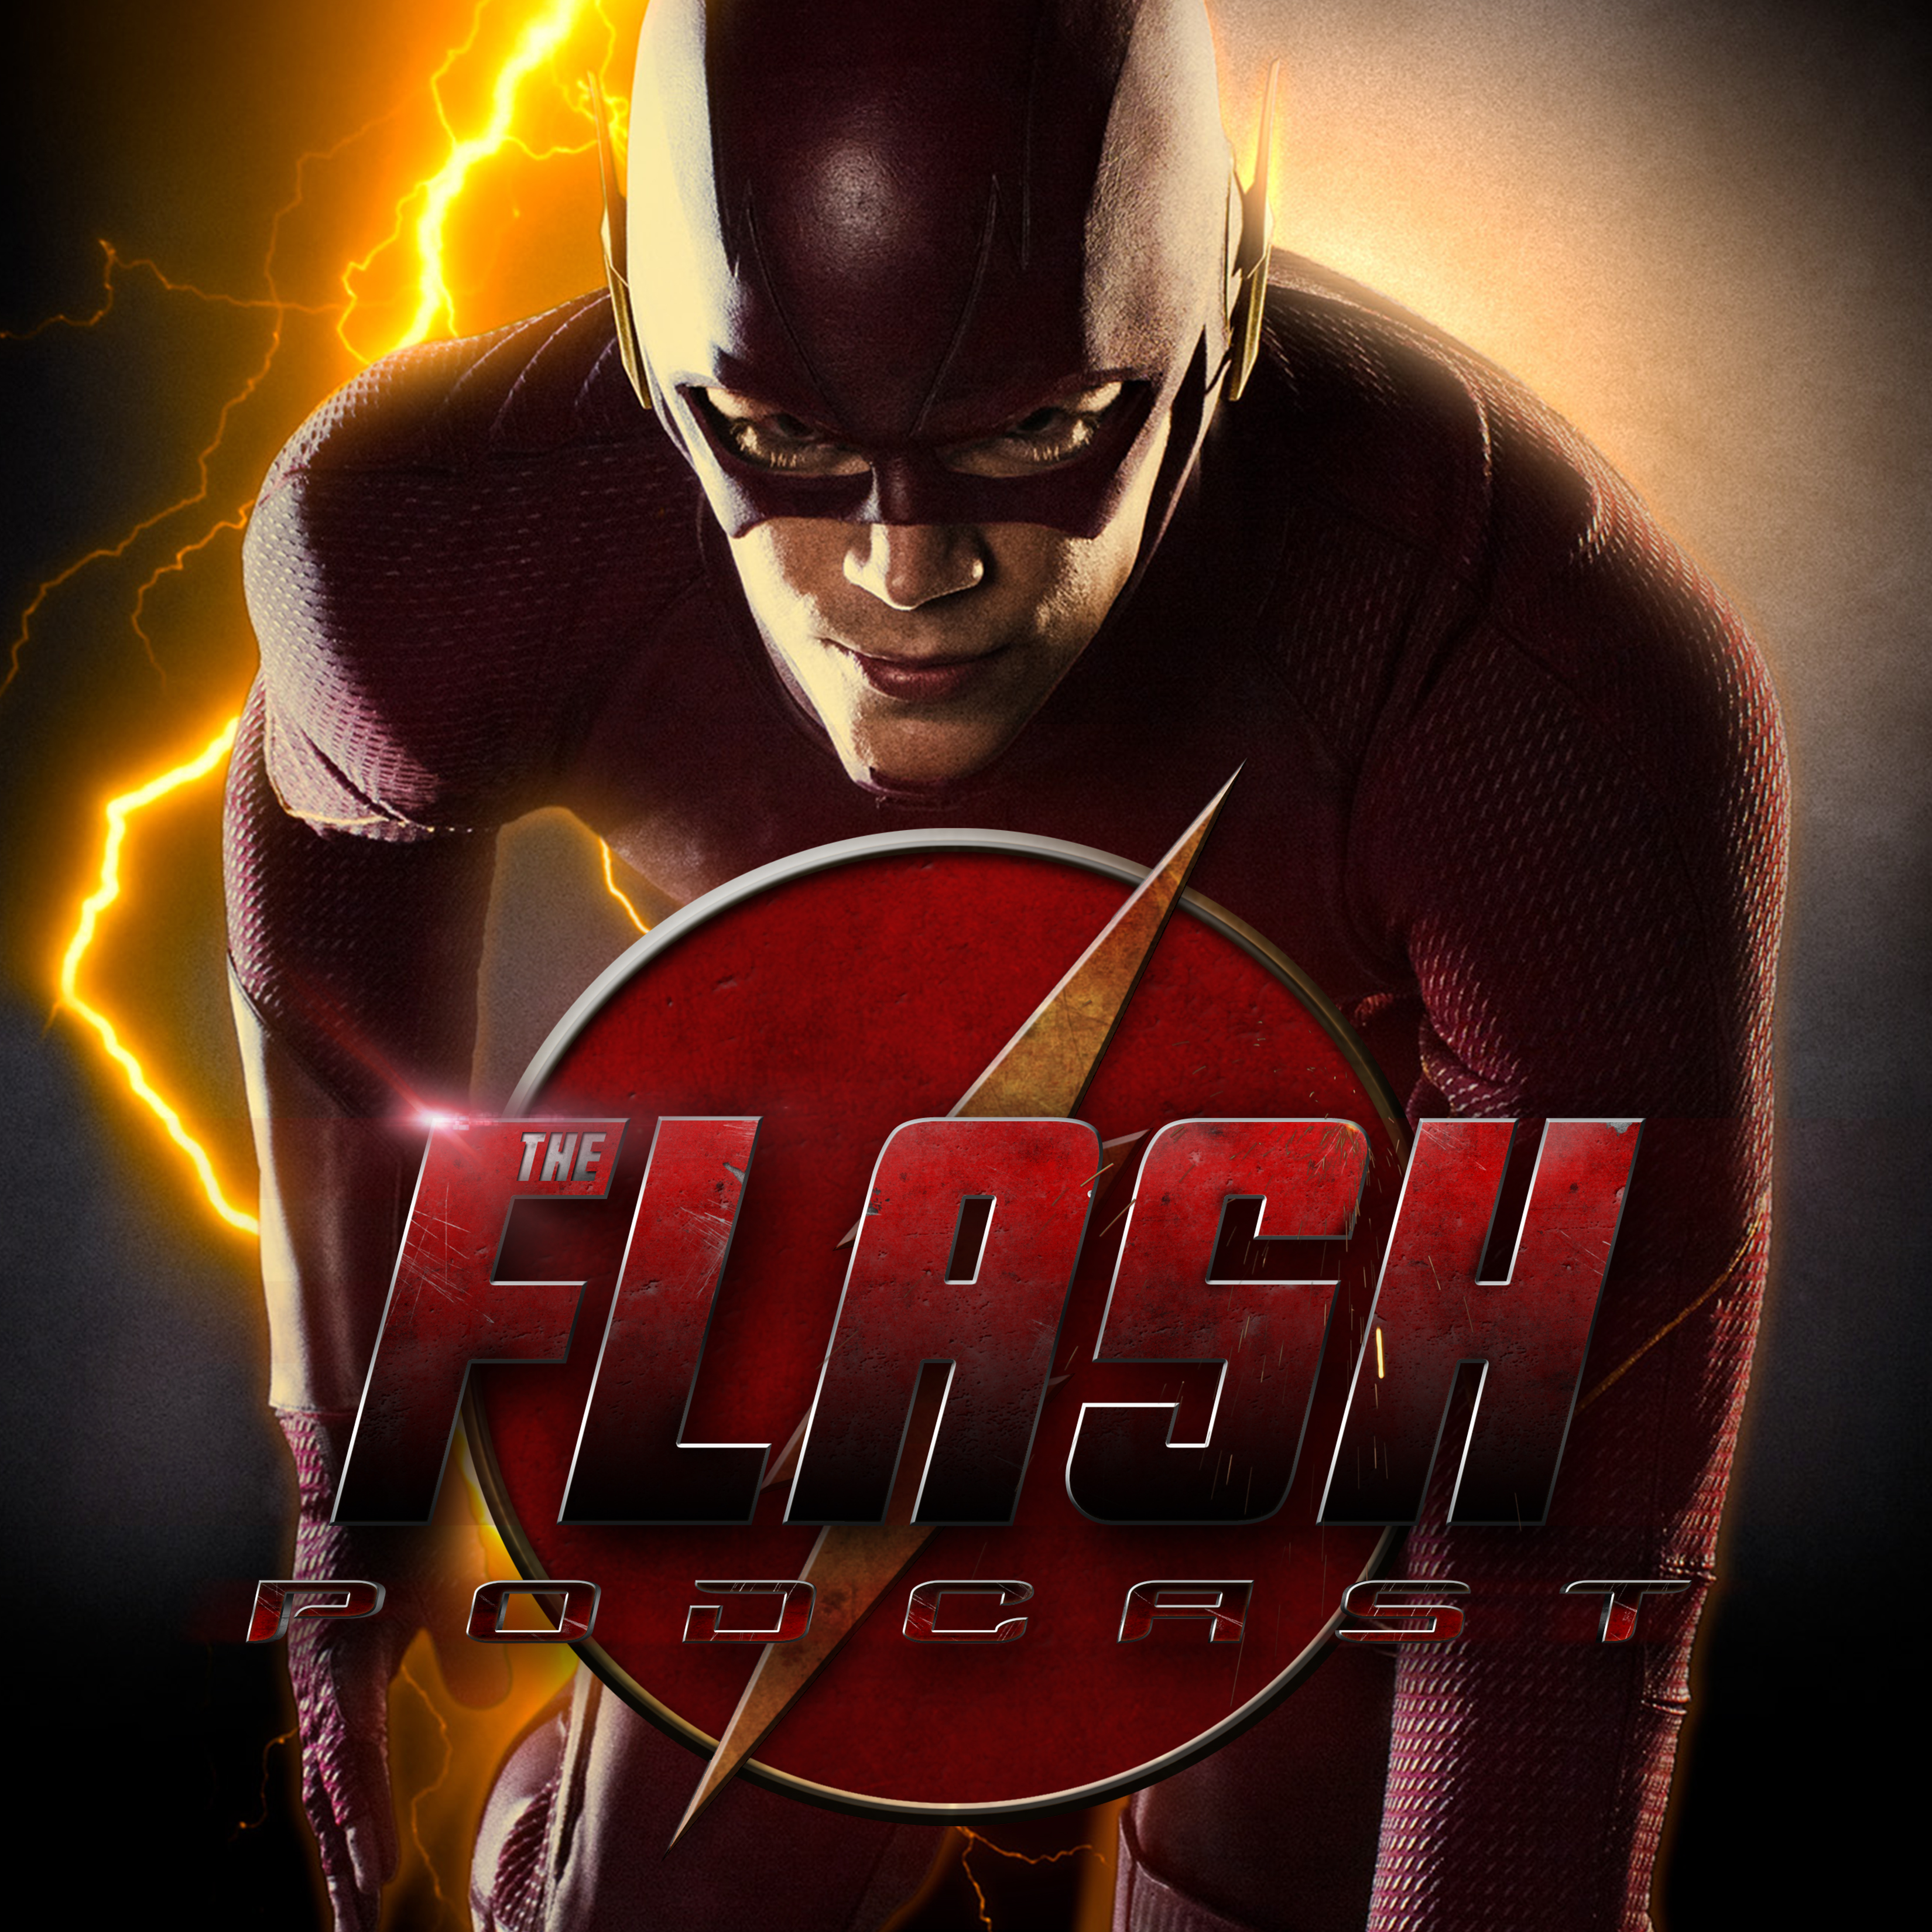 The Flash Podcast 08 - Flash Vs Arrow: The Brave and The Bold